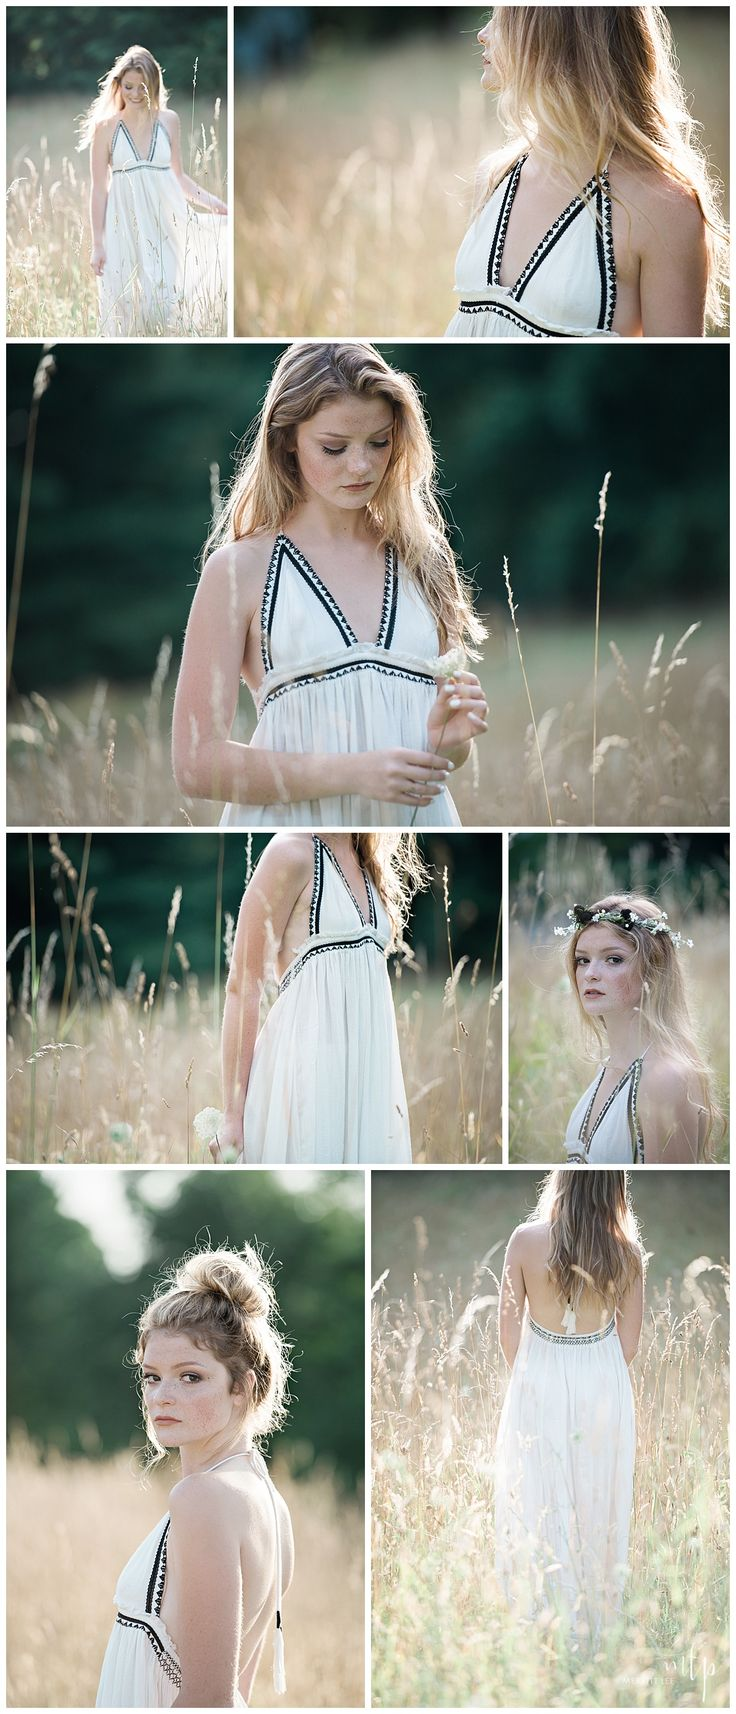 Outdoor Senior Pic Idea! Styled shoot - Hairstyle - Loose Curls - Makeup - Indie Fashion - Natural - Loose Bun - Senior Pictures with Flower Crowns - Unique Senior Pictures - Teen Fashion - Senior Inspo - Trendy - Senior Girl Poses - Sewickley Senior Pictures - Pittsburgh Senior Pictures - By Merritt Lee Photography